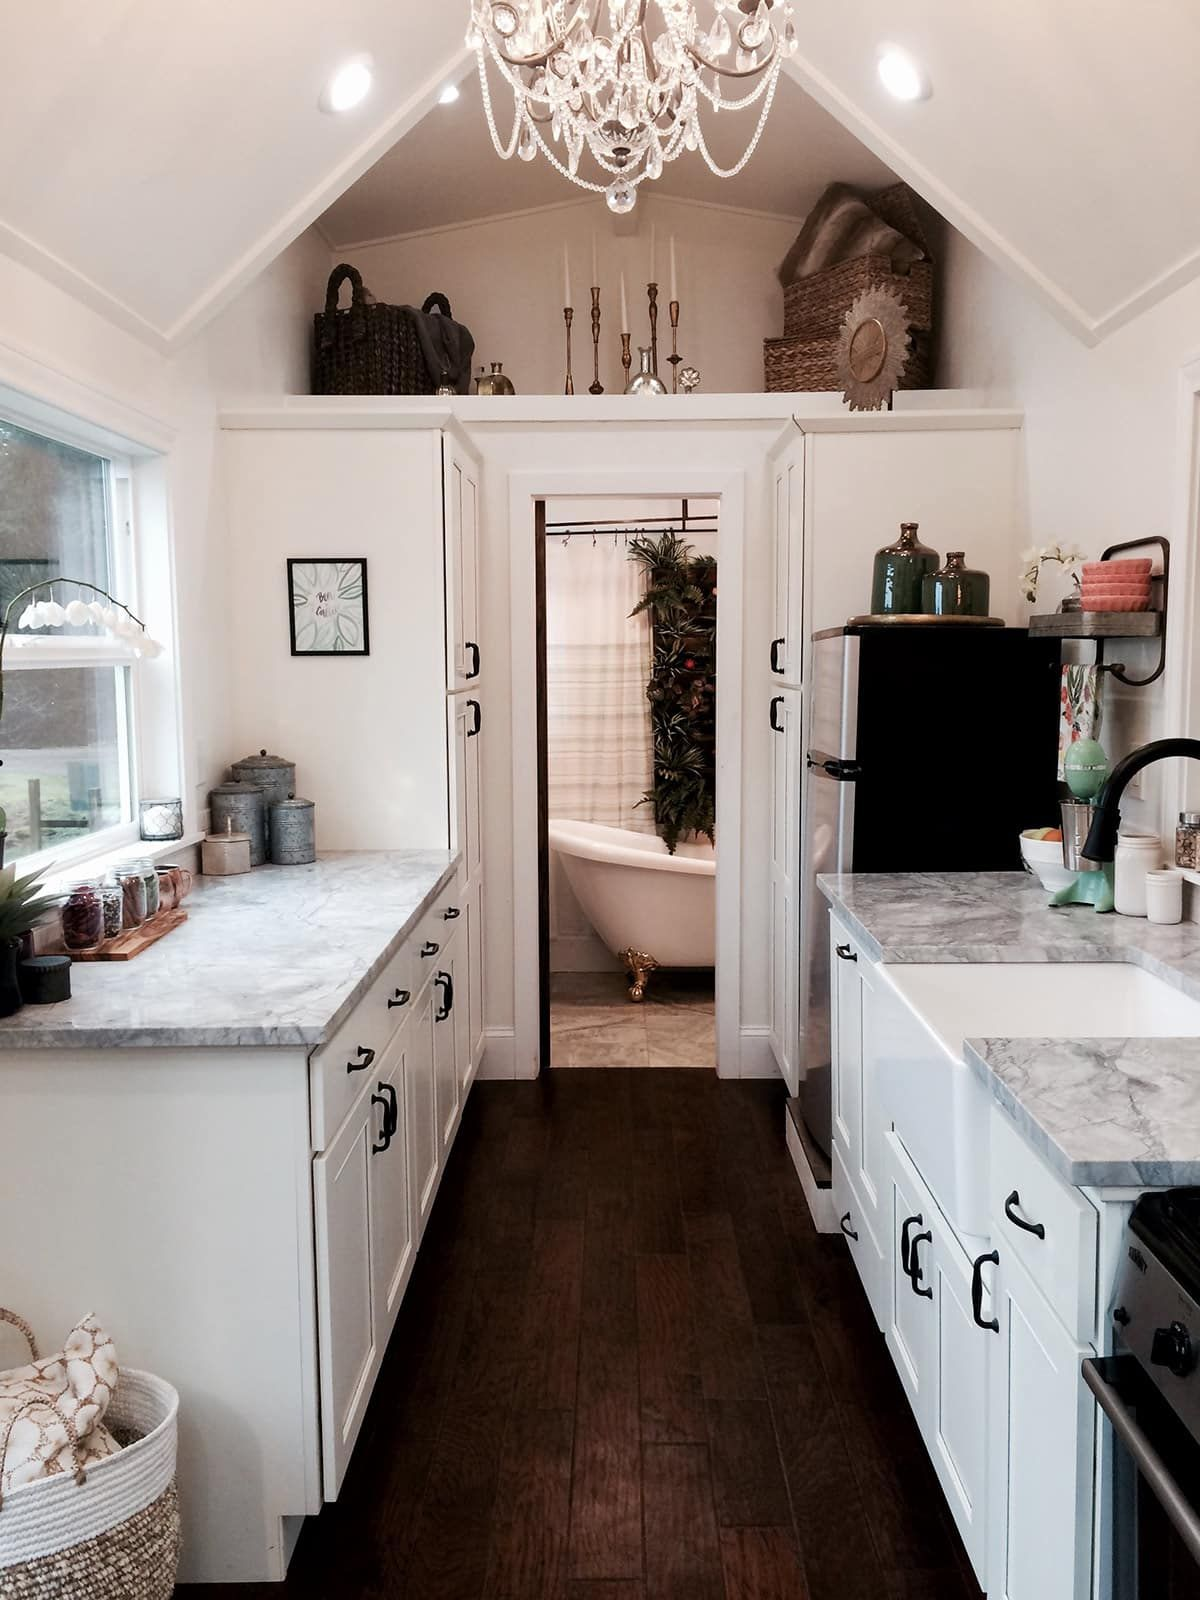 View toward kitchen the alpha tiny home by new frontier tiny homes - A Rustic Chic Blue Tiny House From Tiny Heirloom A Tiny House Construction Company